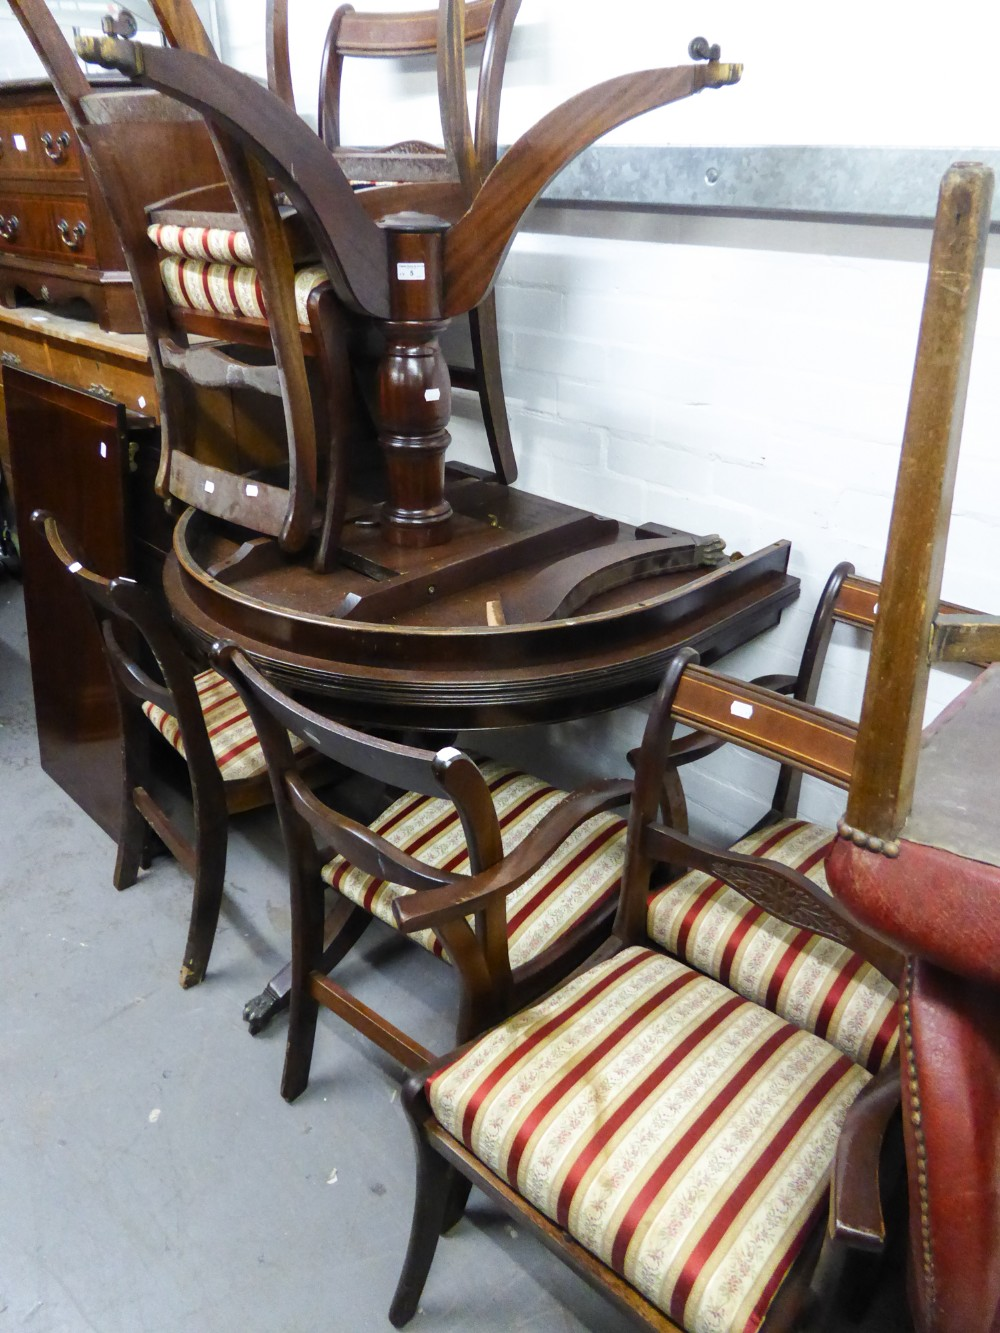 Lot 5 - A REPRODUCTION D- END DINING TABLE AND SIX CHAIRS (INCLUDING TWO CARVERS) HAVING STRIPED SILK PAD